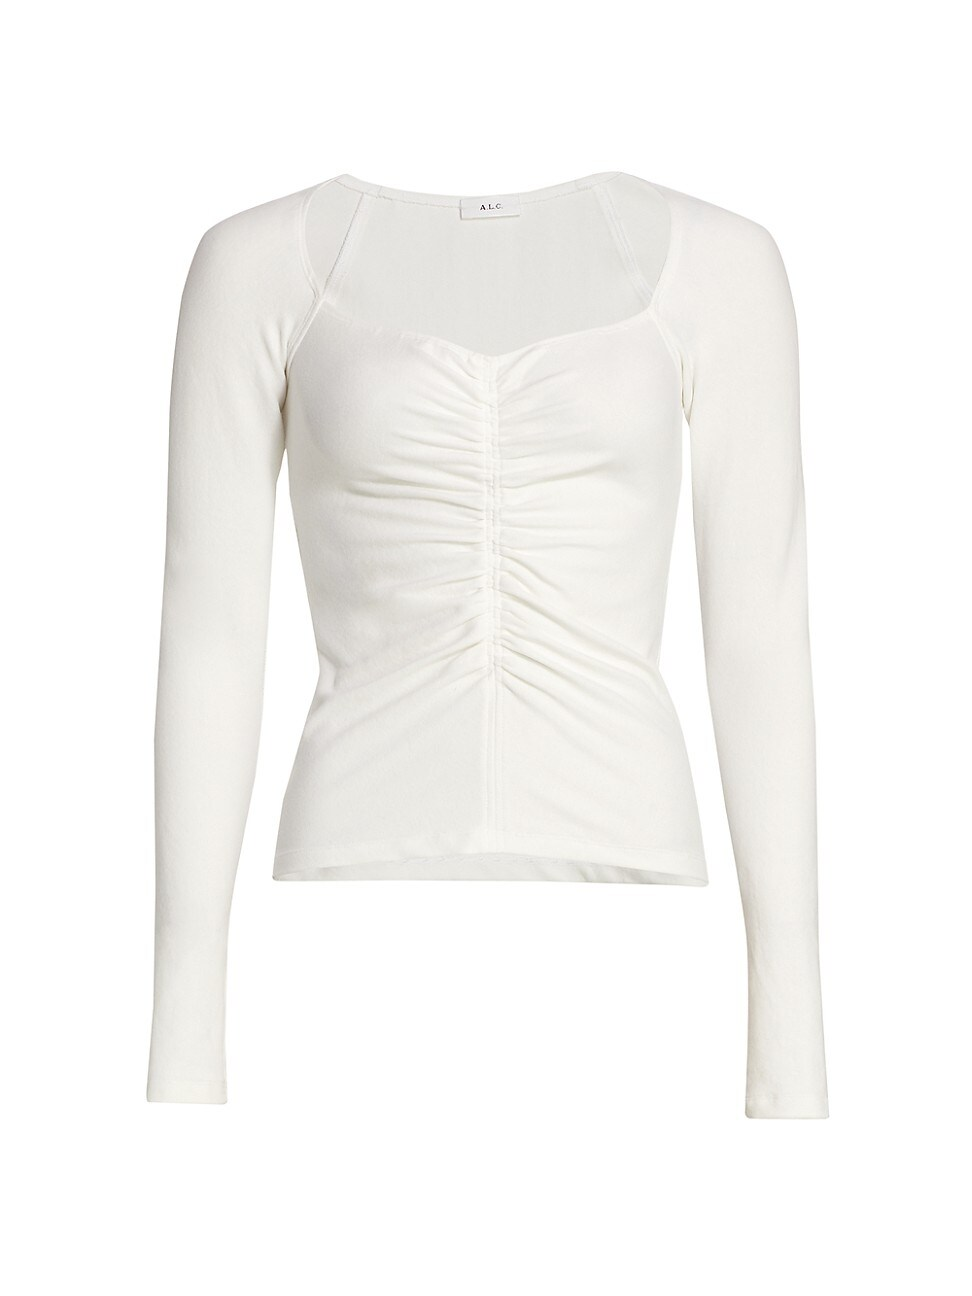 A.l.c WOMEN'S HALLEY RUCHED LONG-SLEEVE T-SHIRT